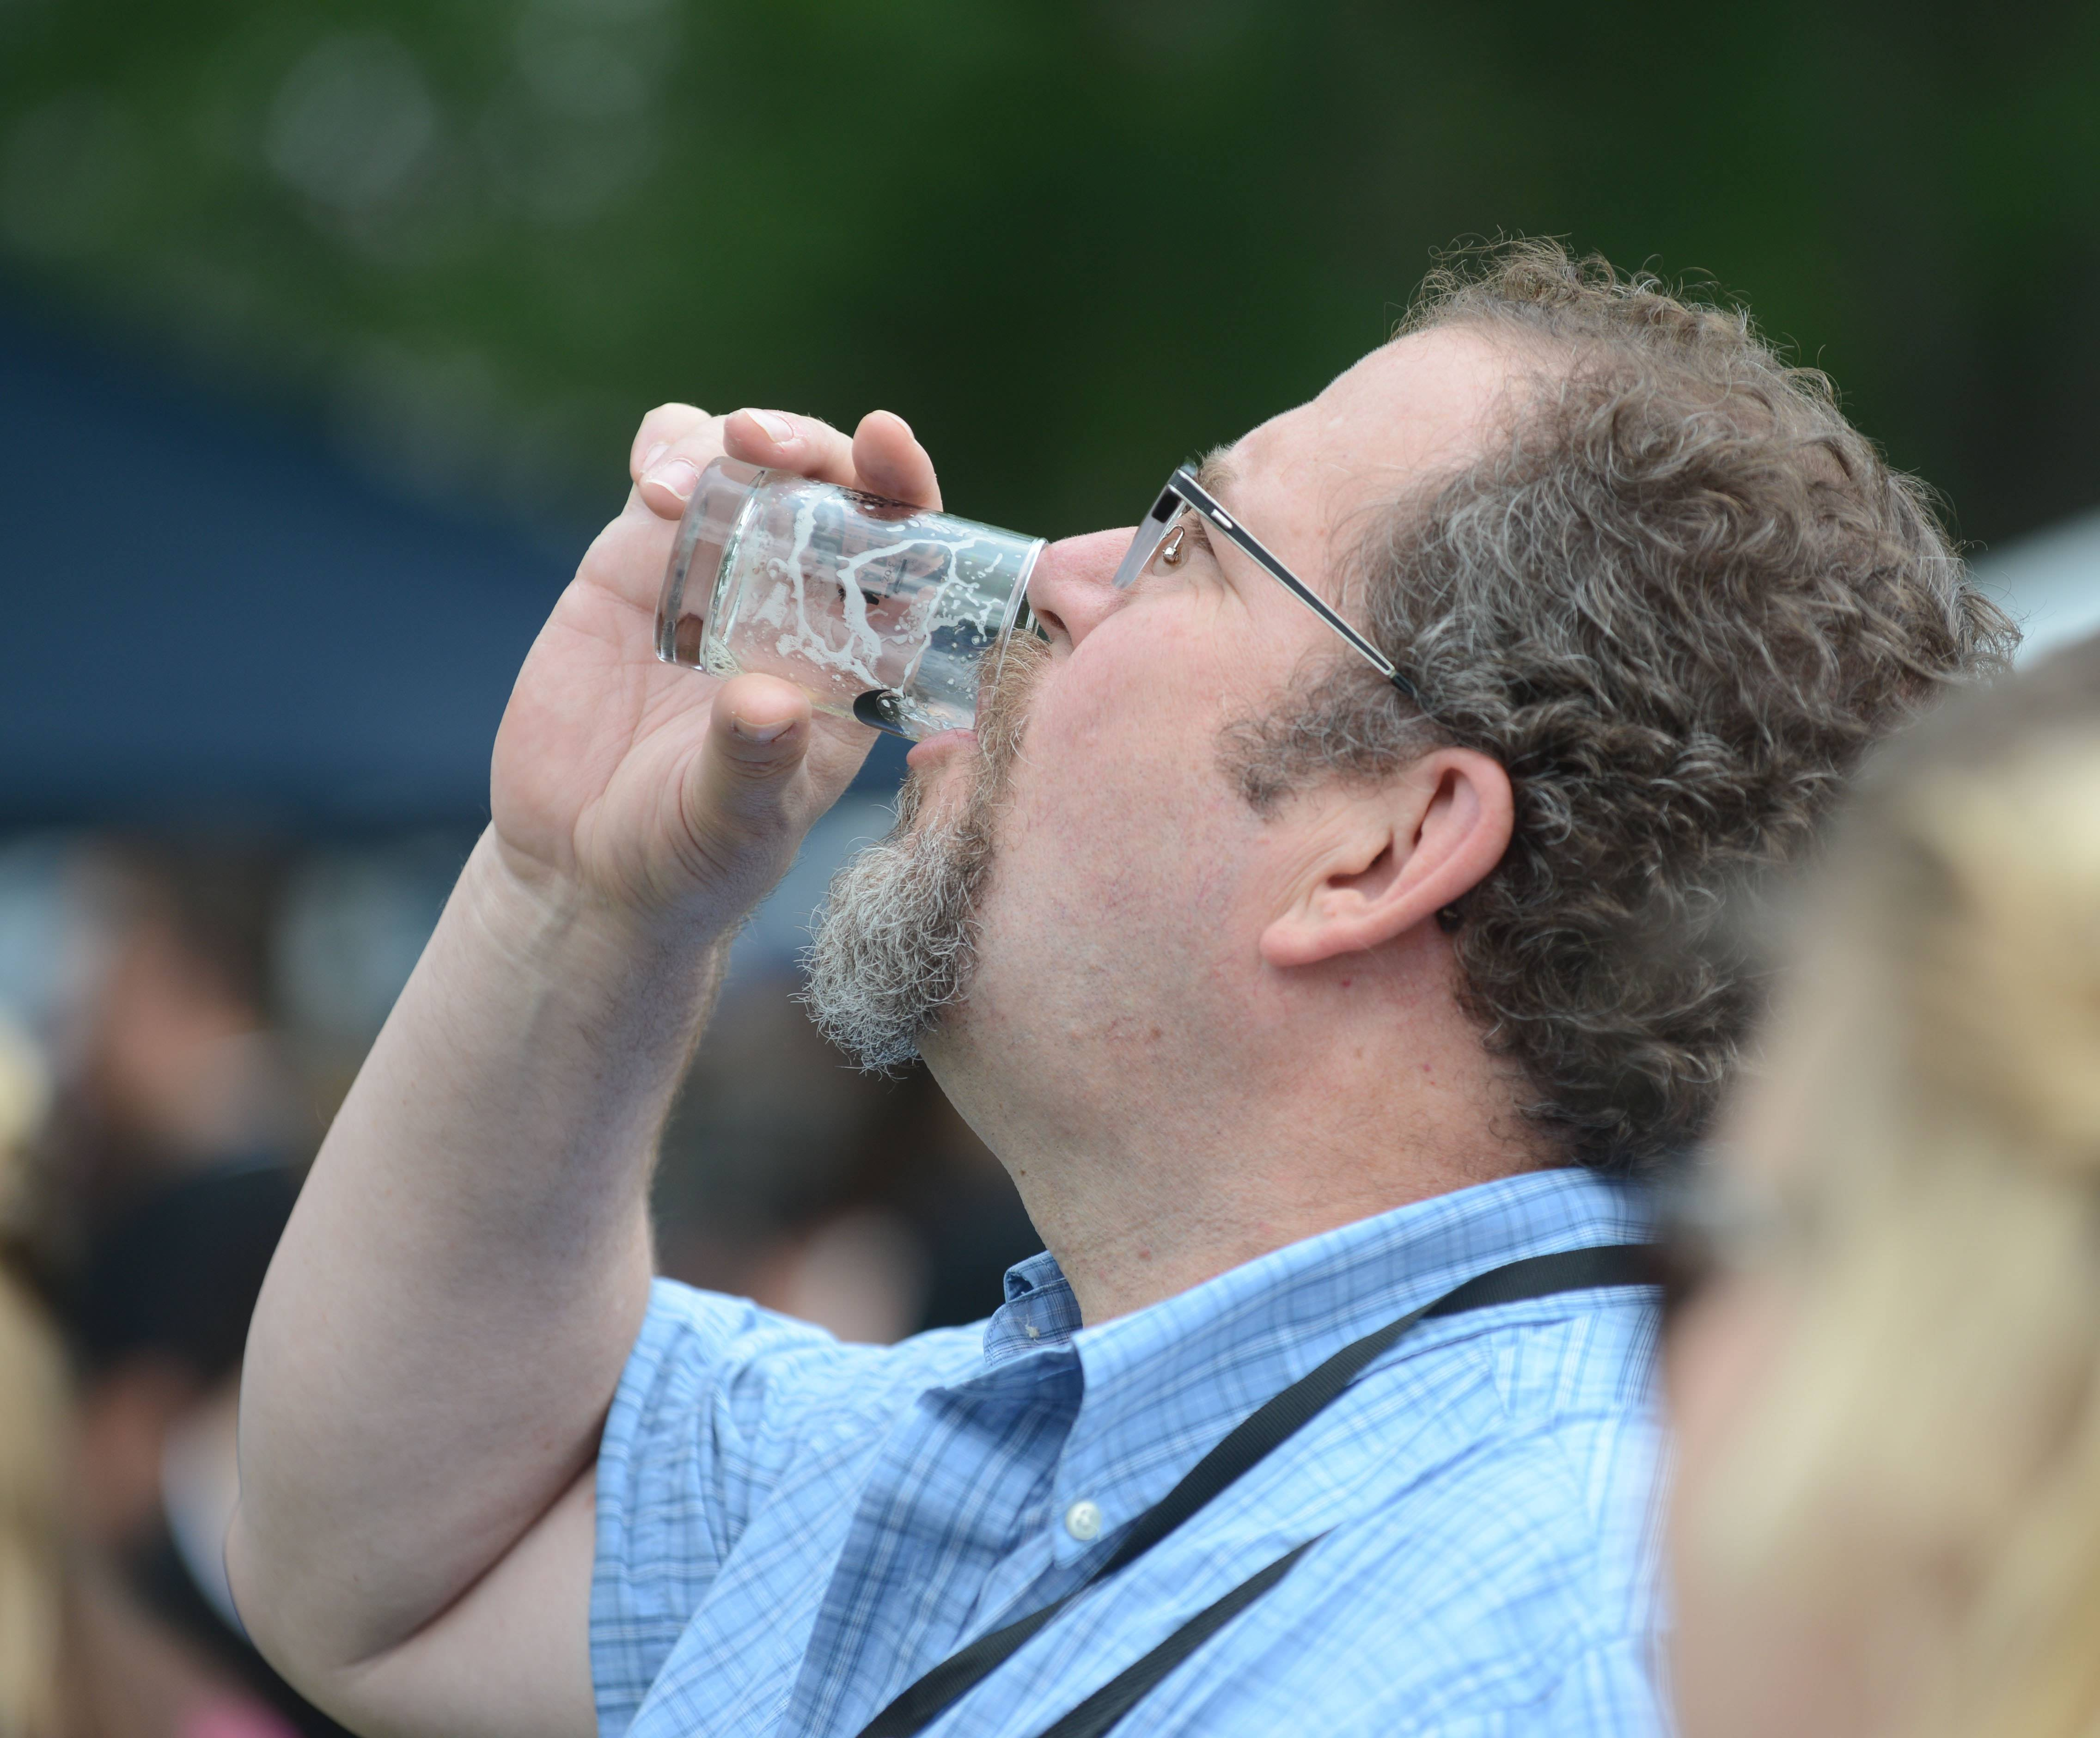 Kelly Fullerton, of Naperville, enjoys his beer to the last drop at The Naperville Ale Fest at Naper Settlement. More than 180 beers from craft breweries around the country were there to benefit Naper Settlement and the Naperville Heritage Society.